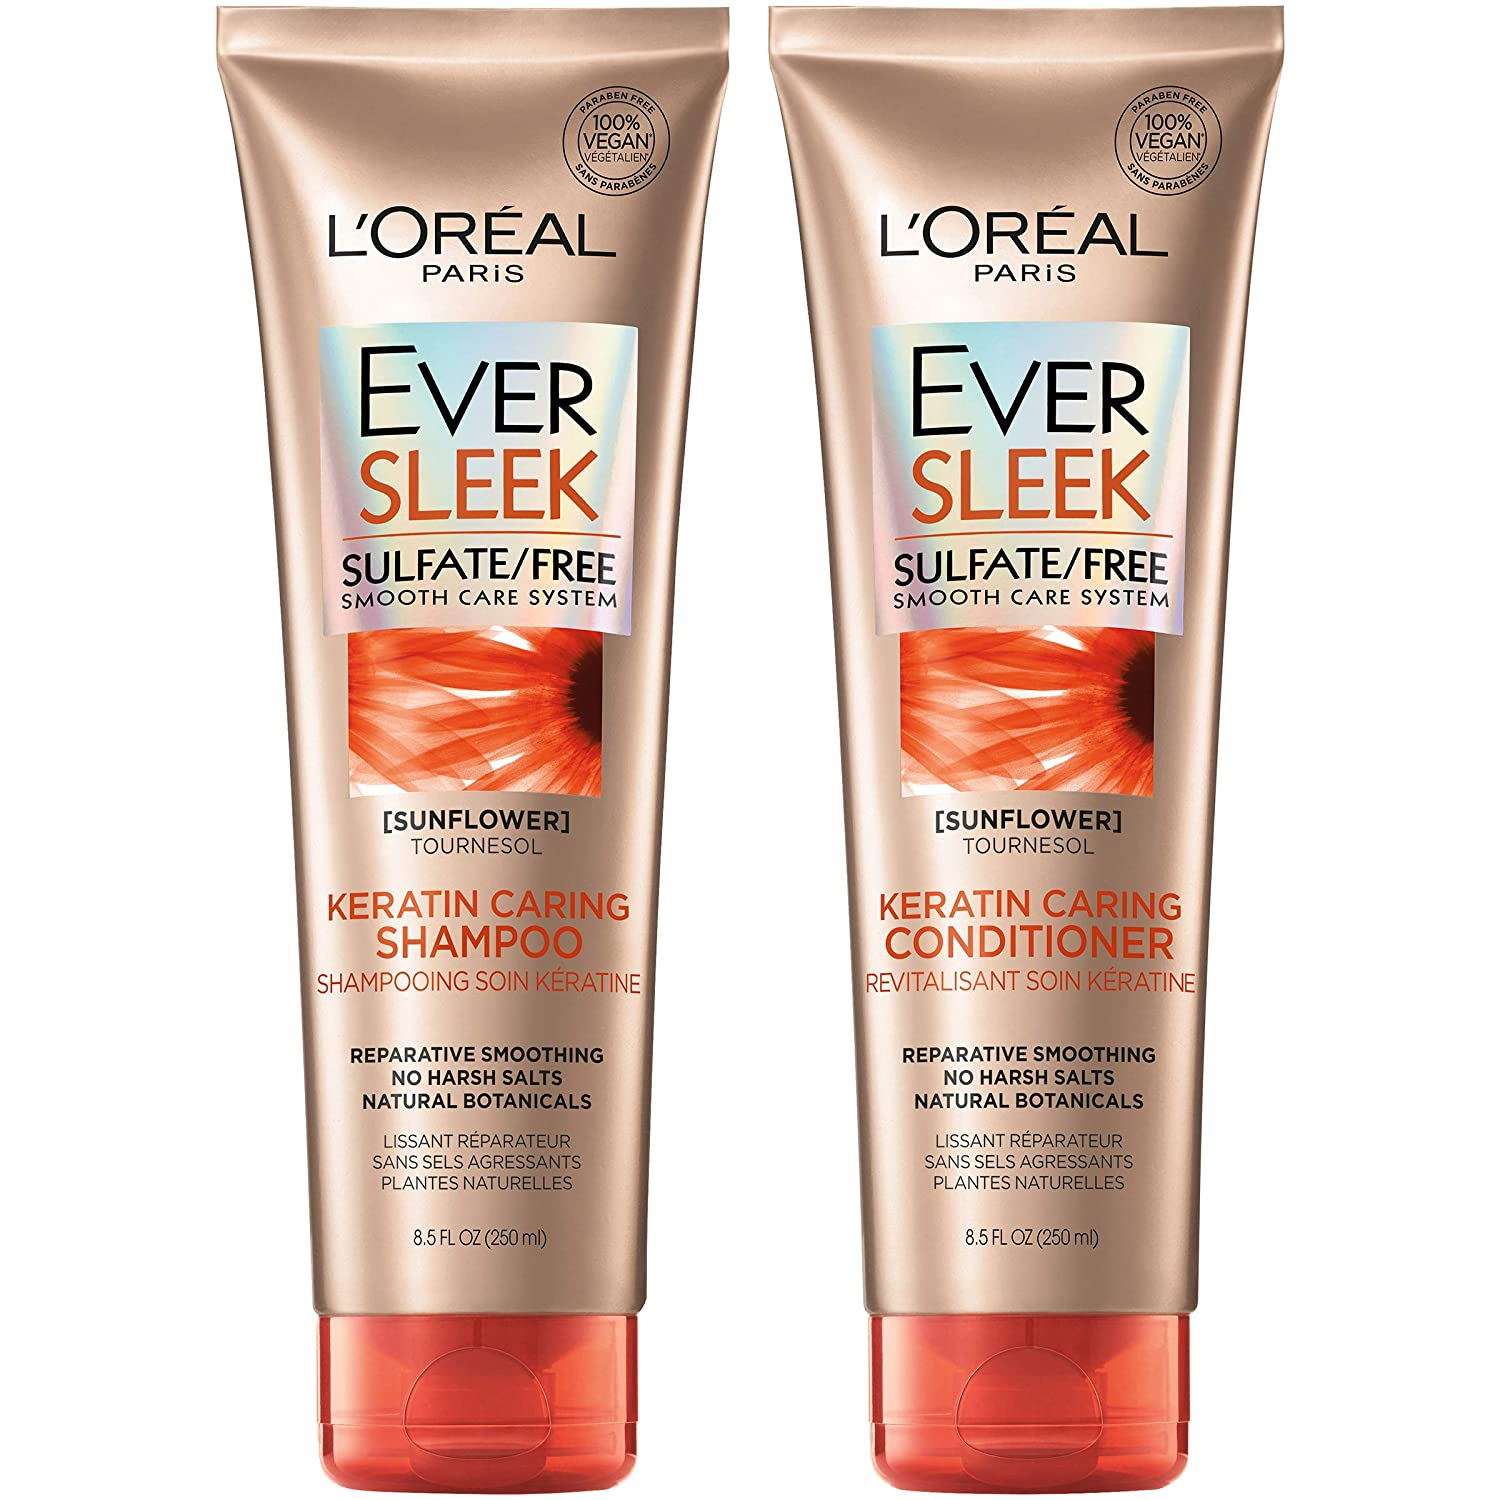 L'Oréal Paris Hair Care EverSleek Keratin Caring Sulfate Free Shampoo & Conditioner Kit, Smooths + Repairs, With Sunflower Oil, For Dry, Straightened Hair (8.5 Fl. Oz each)